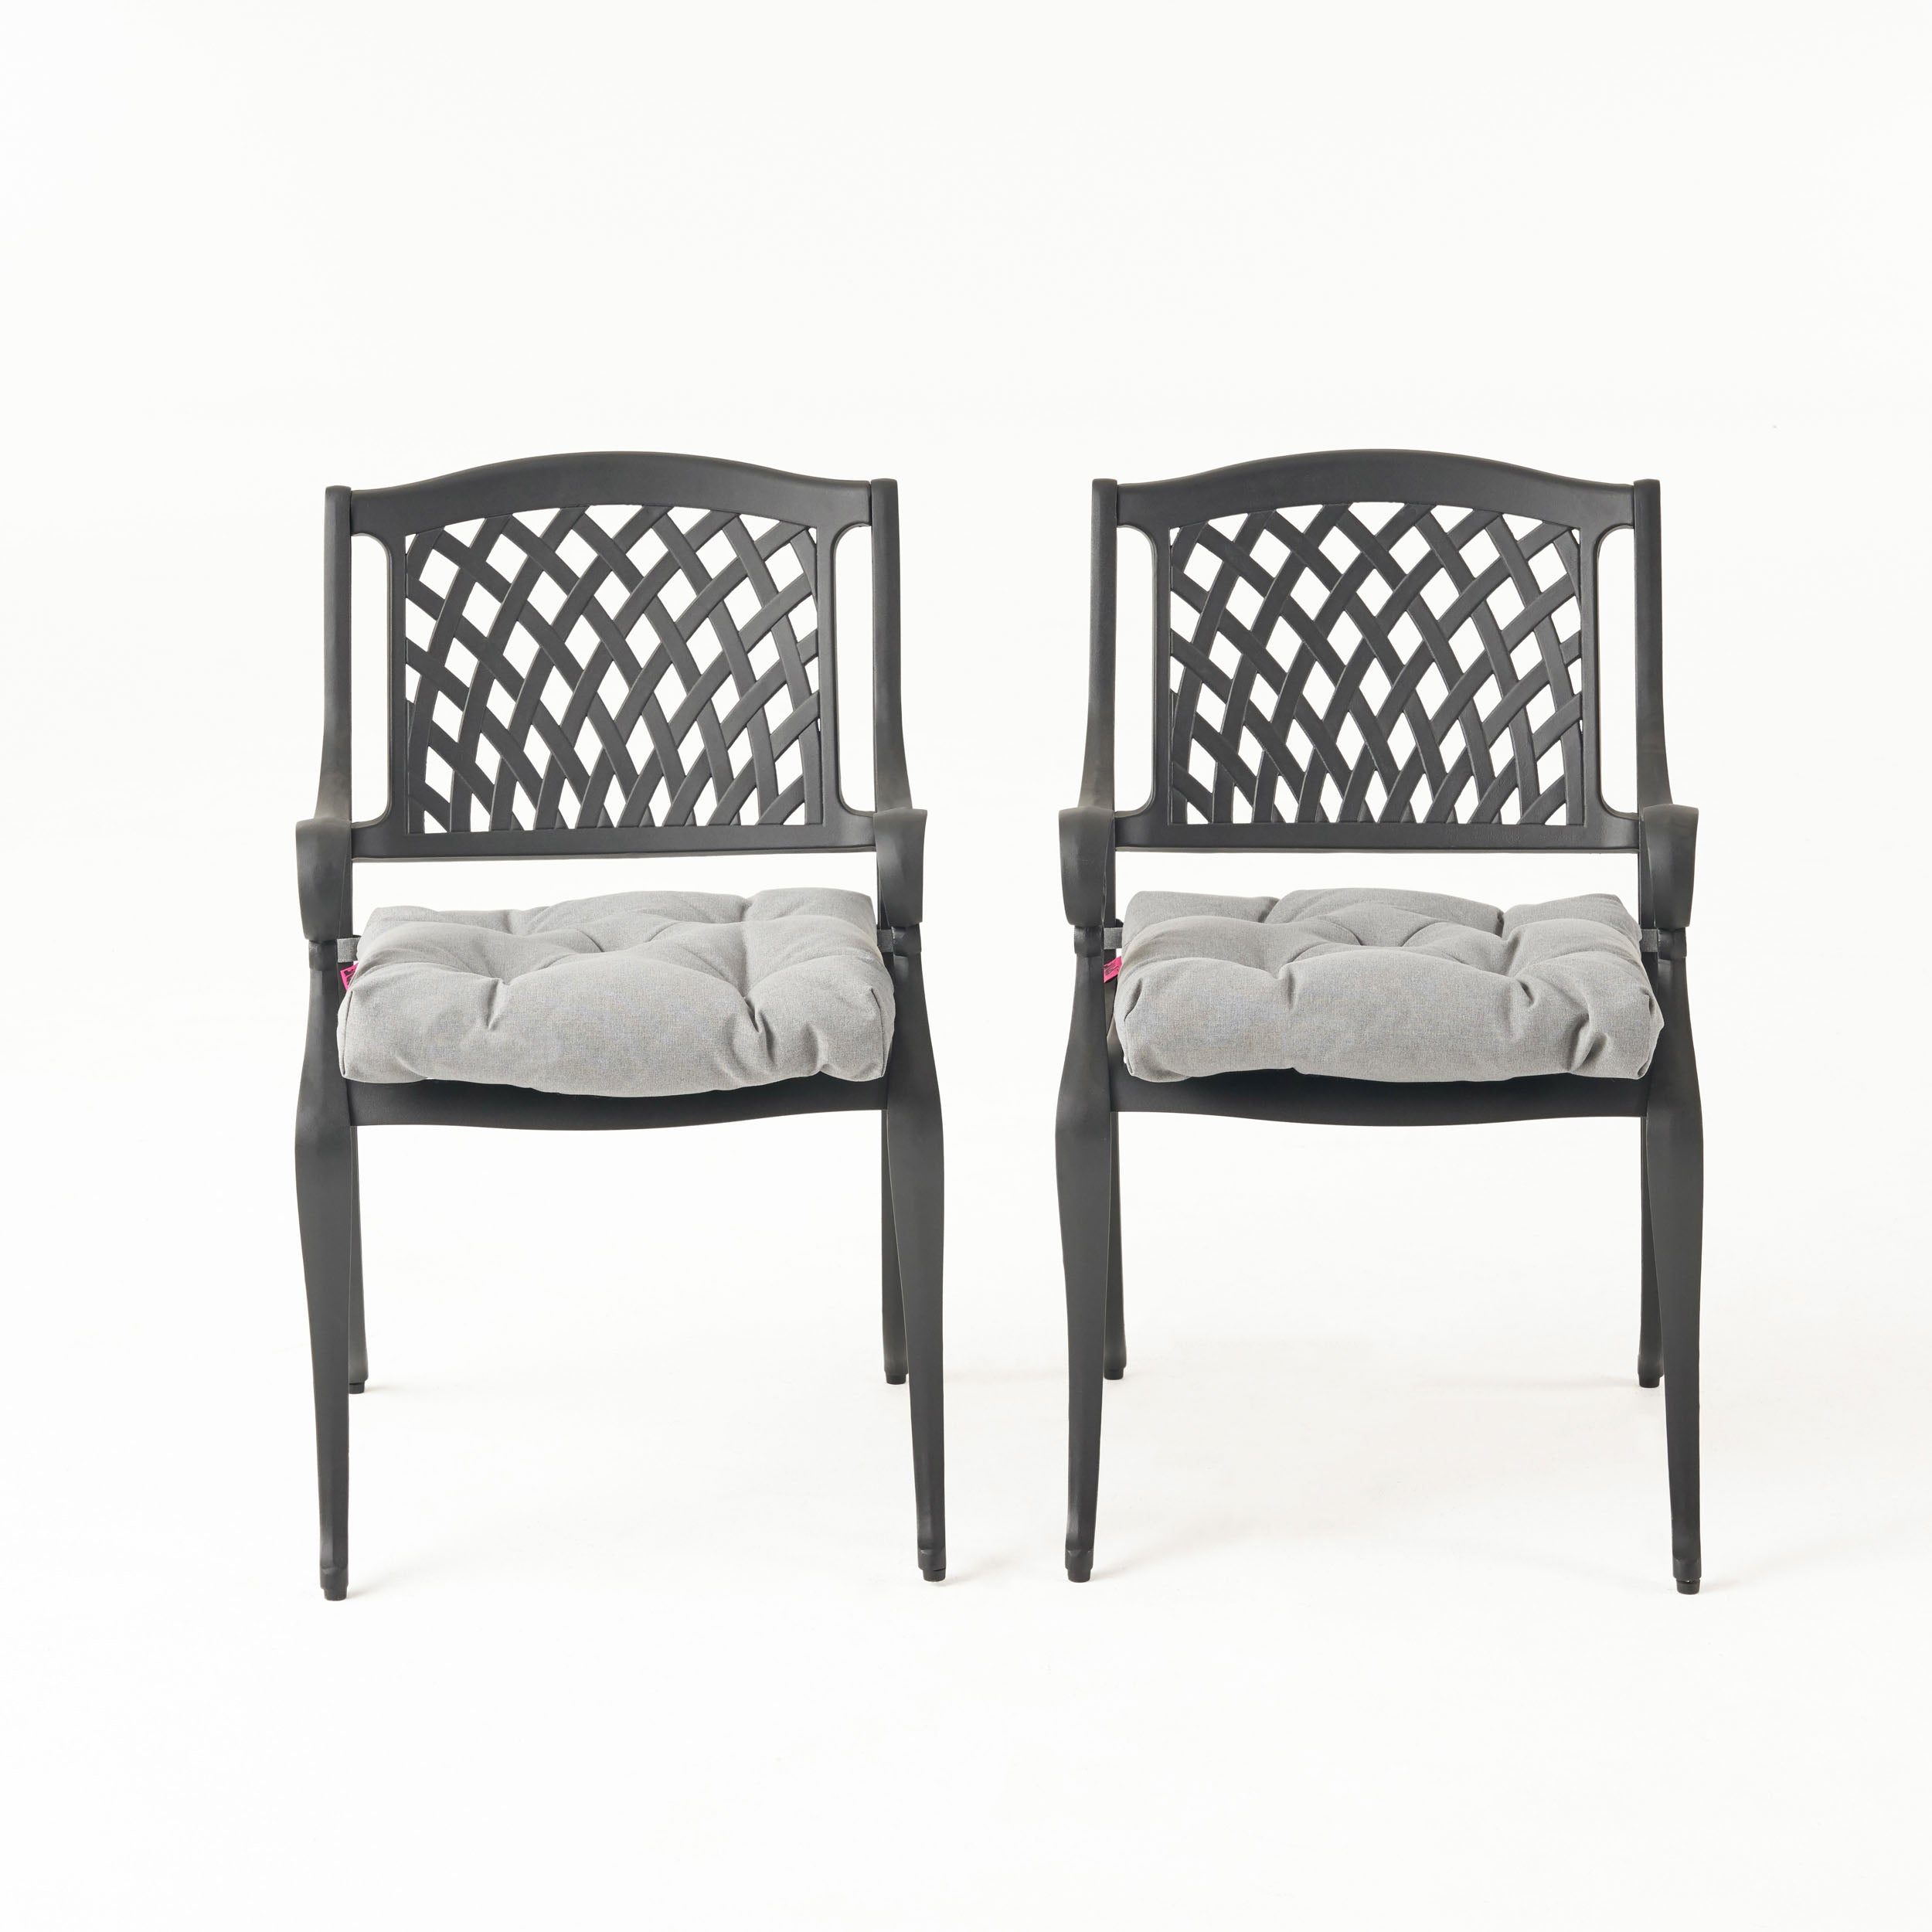 Allee Outdoor Dining Chair with Cushion Set of 2 Navy